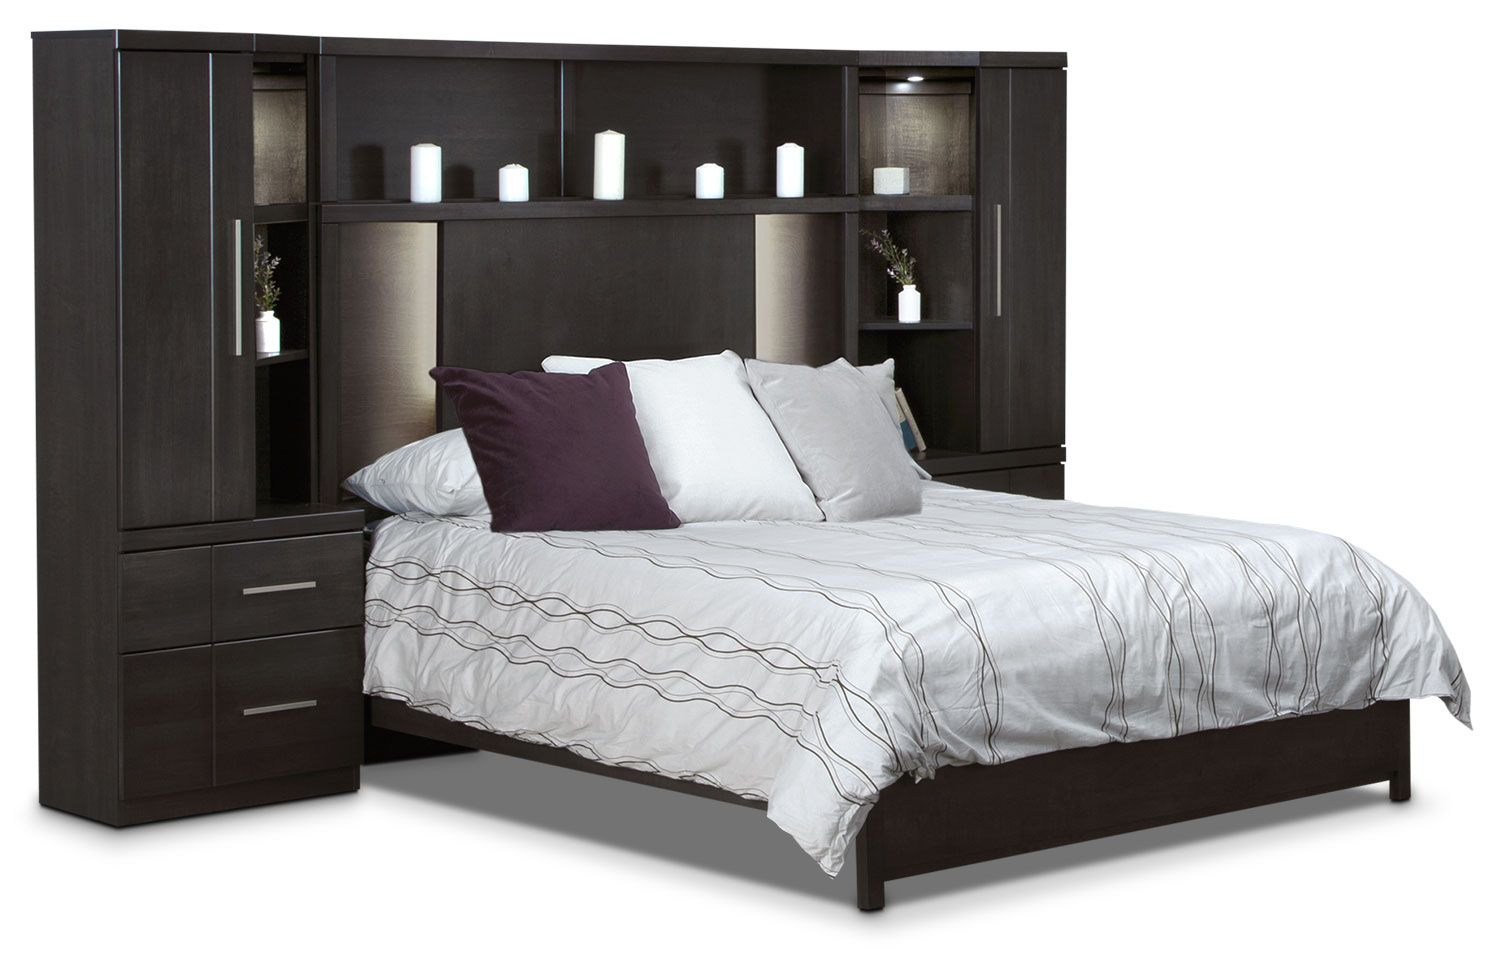 Seville 6Piece King Wallbed Set Charcoal 2799 Bed